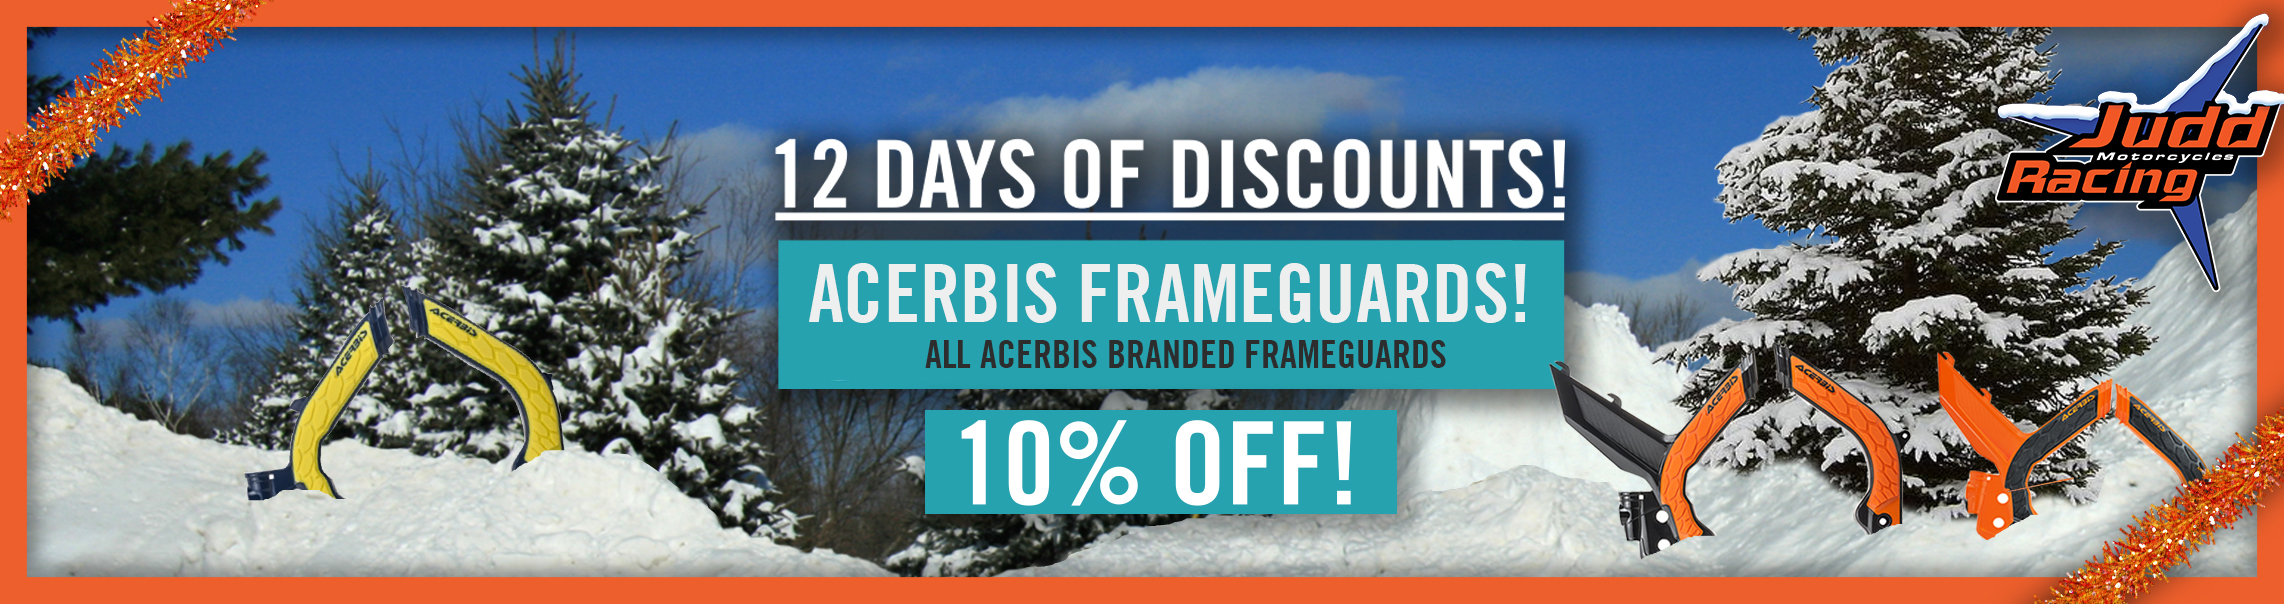 frame-guard-discount-banner-with-border.jpg